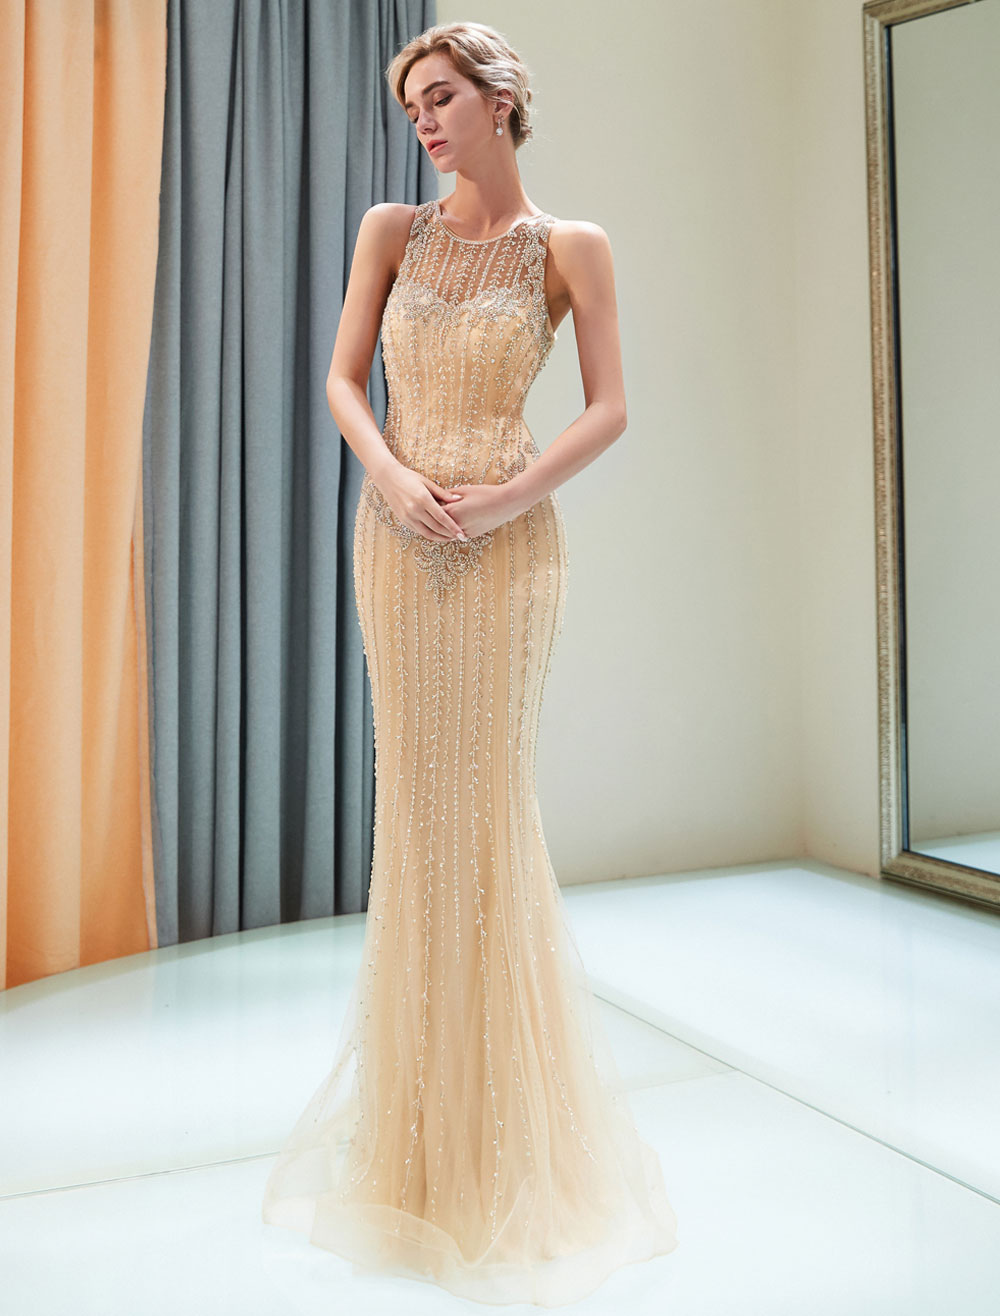 5783c08927b ... Luxury Evening Dresses Mermaid Beading Light Gold Formal Gowns -No.8.  12. 45%OFF. Color Light Gold